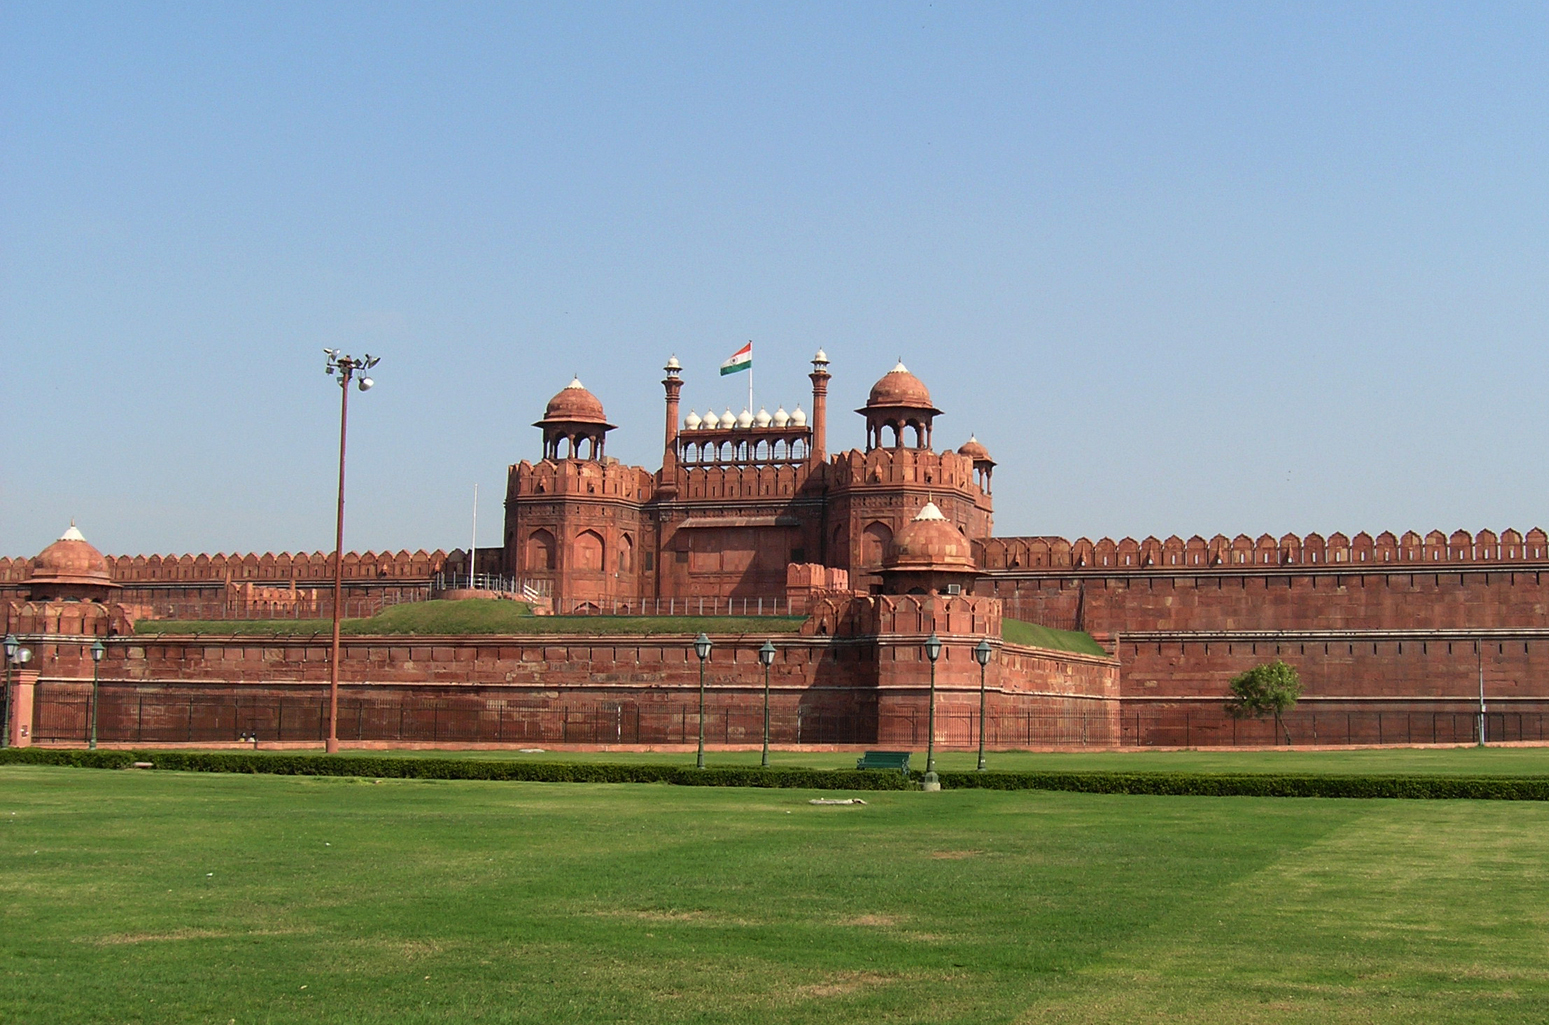 FileRed Fort Delhi by alexfurrjpg  Wikimedia Commons